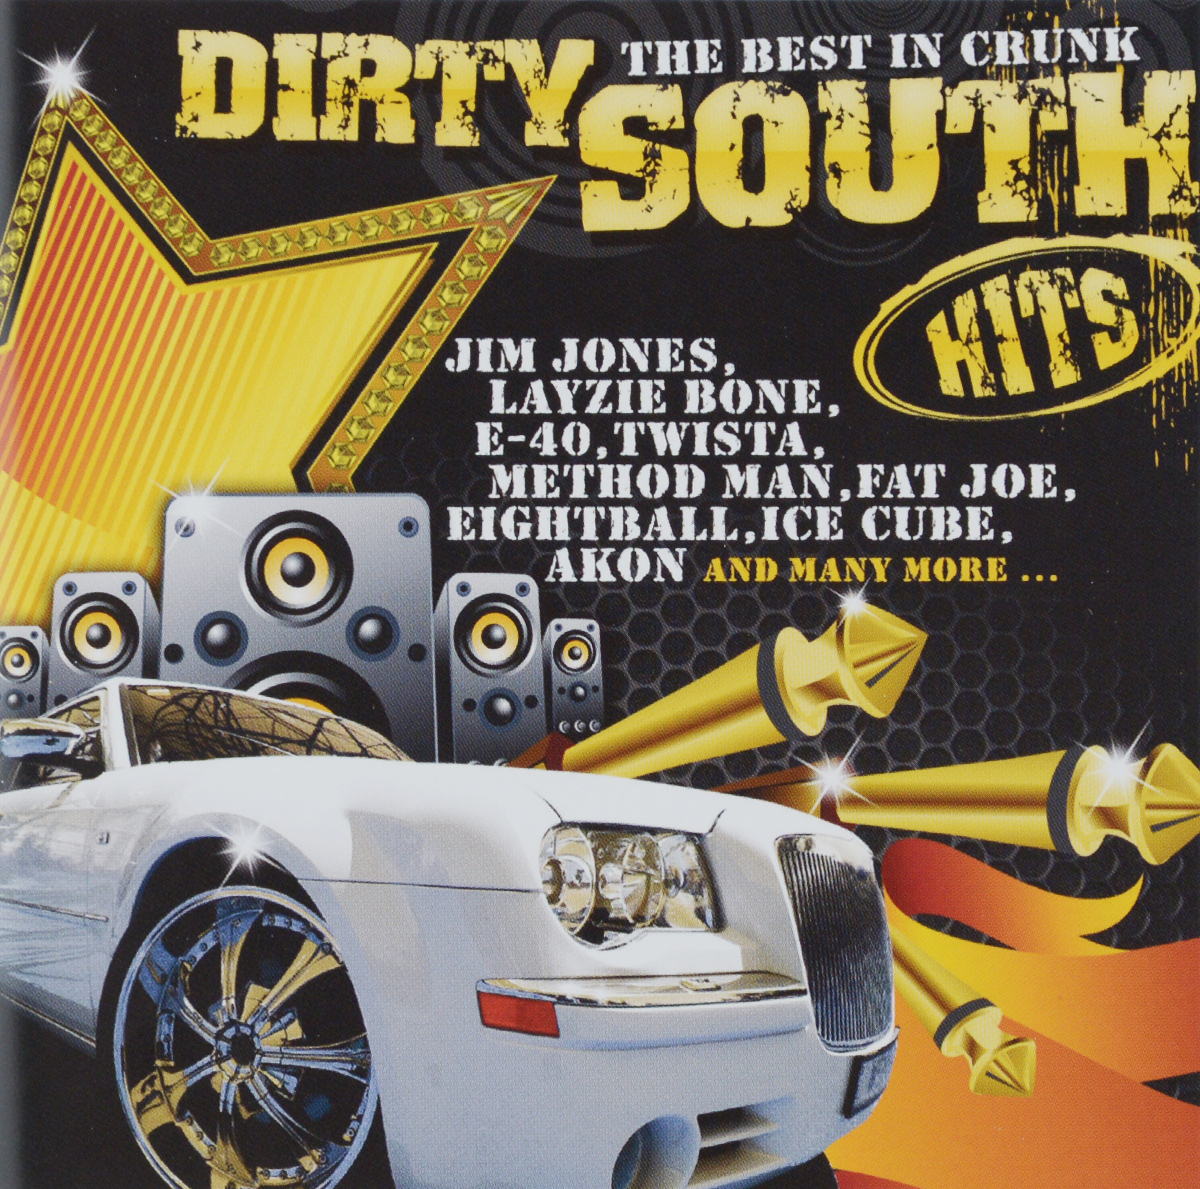 40 Cal Dirty South Hits. The Best In Crunk (2 CD) nr 1 club hits best of dance & techno 2 cd